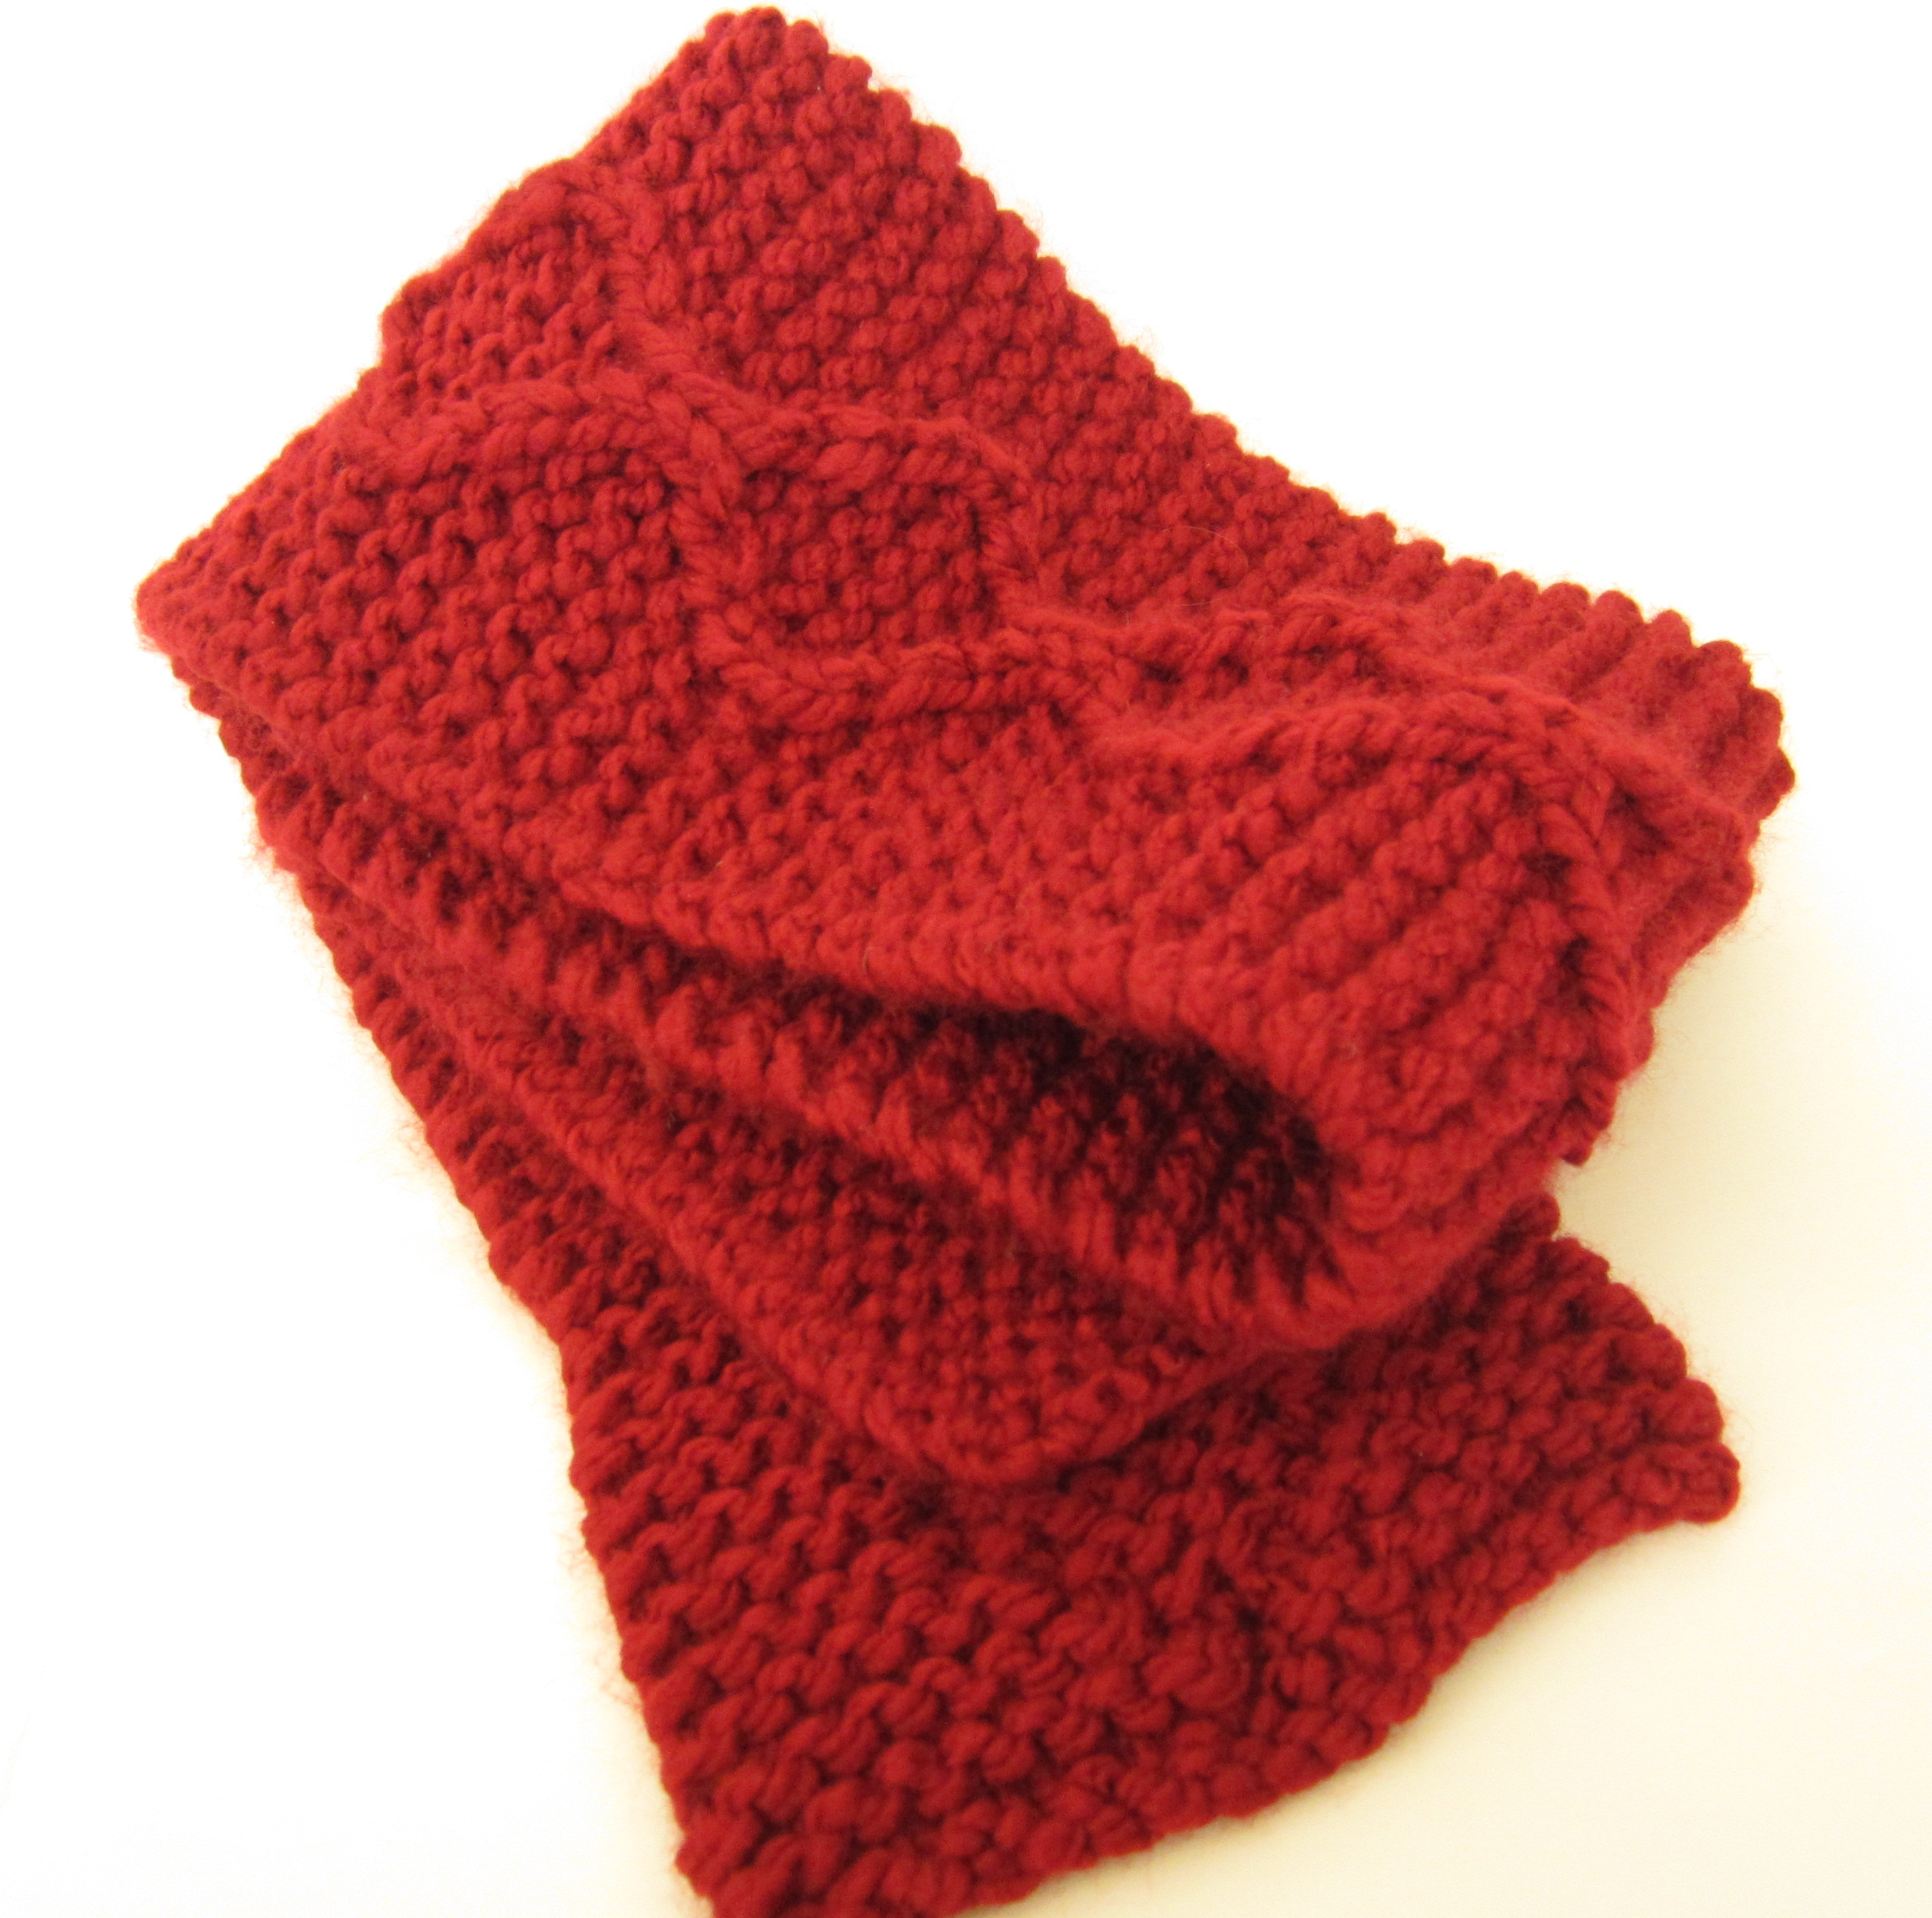 Knitting Patterns For Scarfs : Quick Free Knitting Pattern   Chunky Cable Scarf